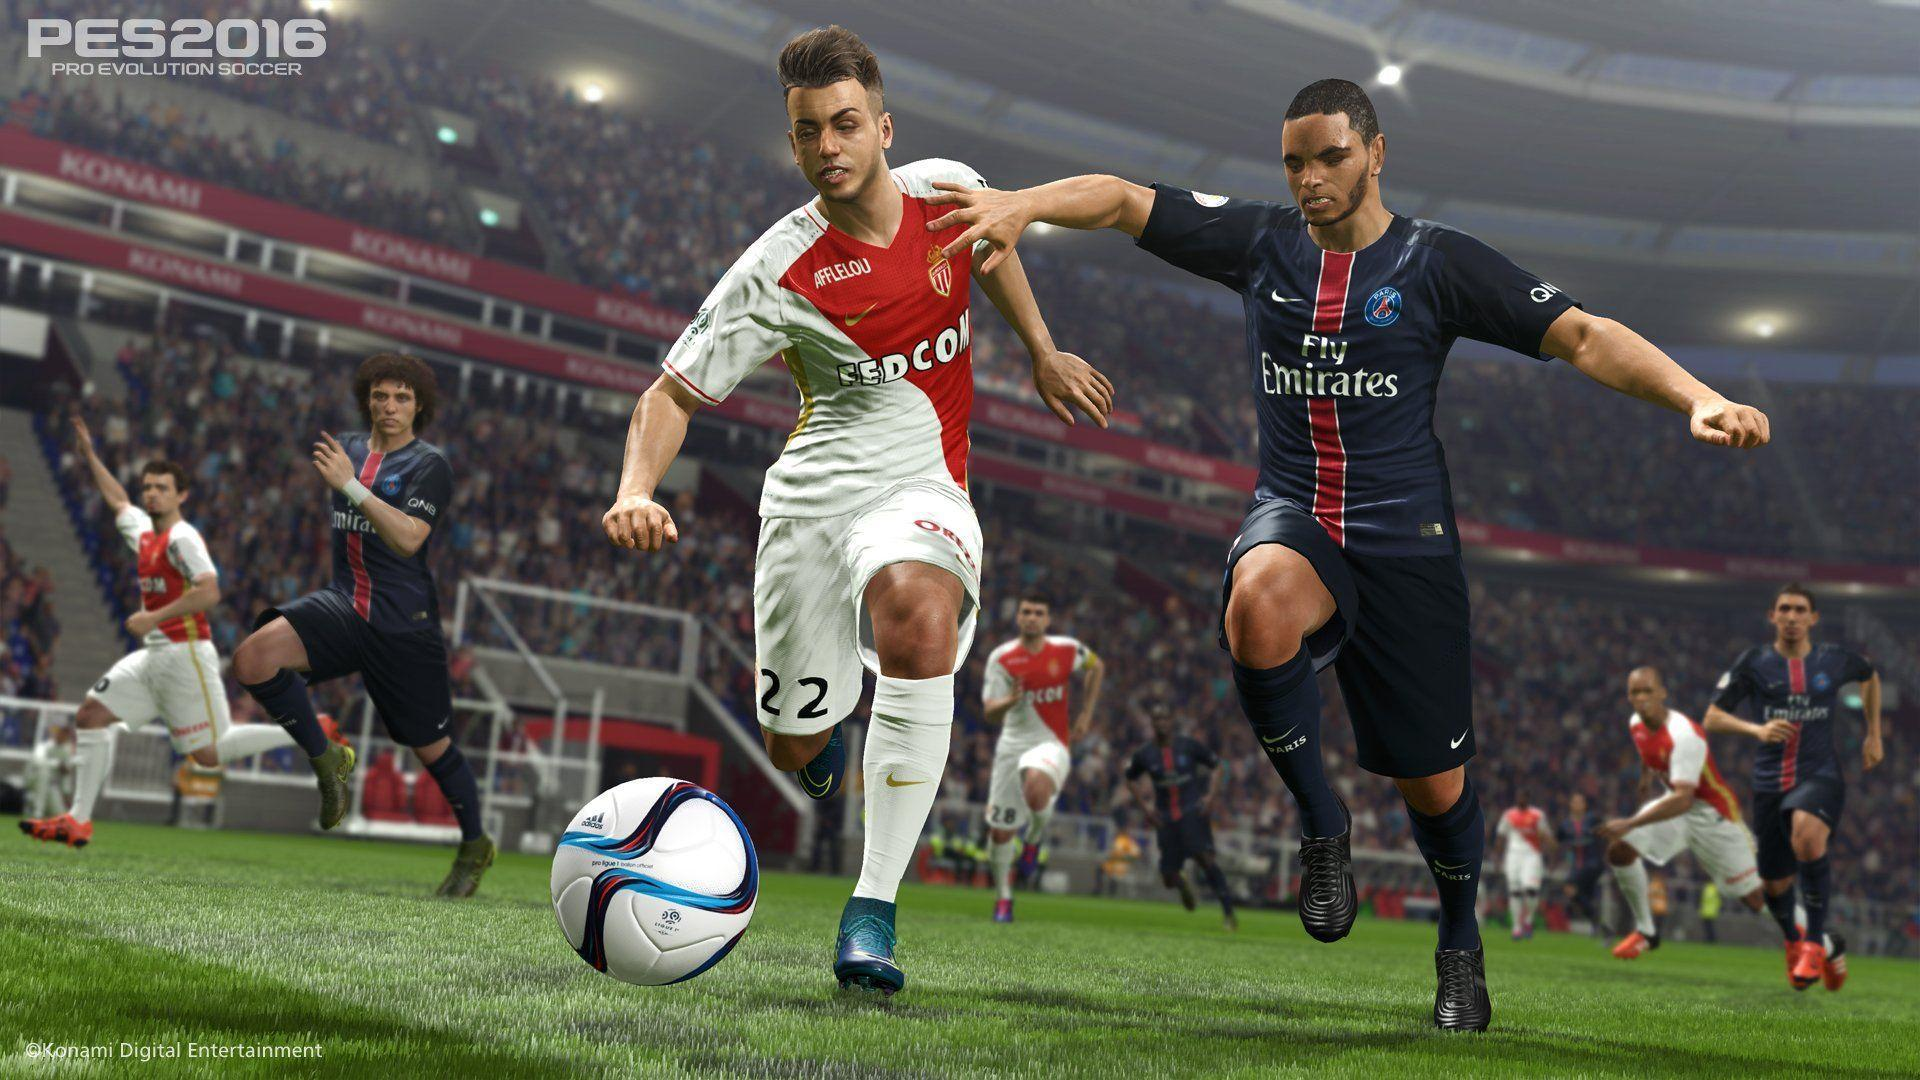 Pes 2016 wallpapers wallpaper cave great pro evolution soccer 2016 wallpaper full hd pictures voltagebd Choice Image